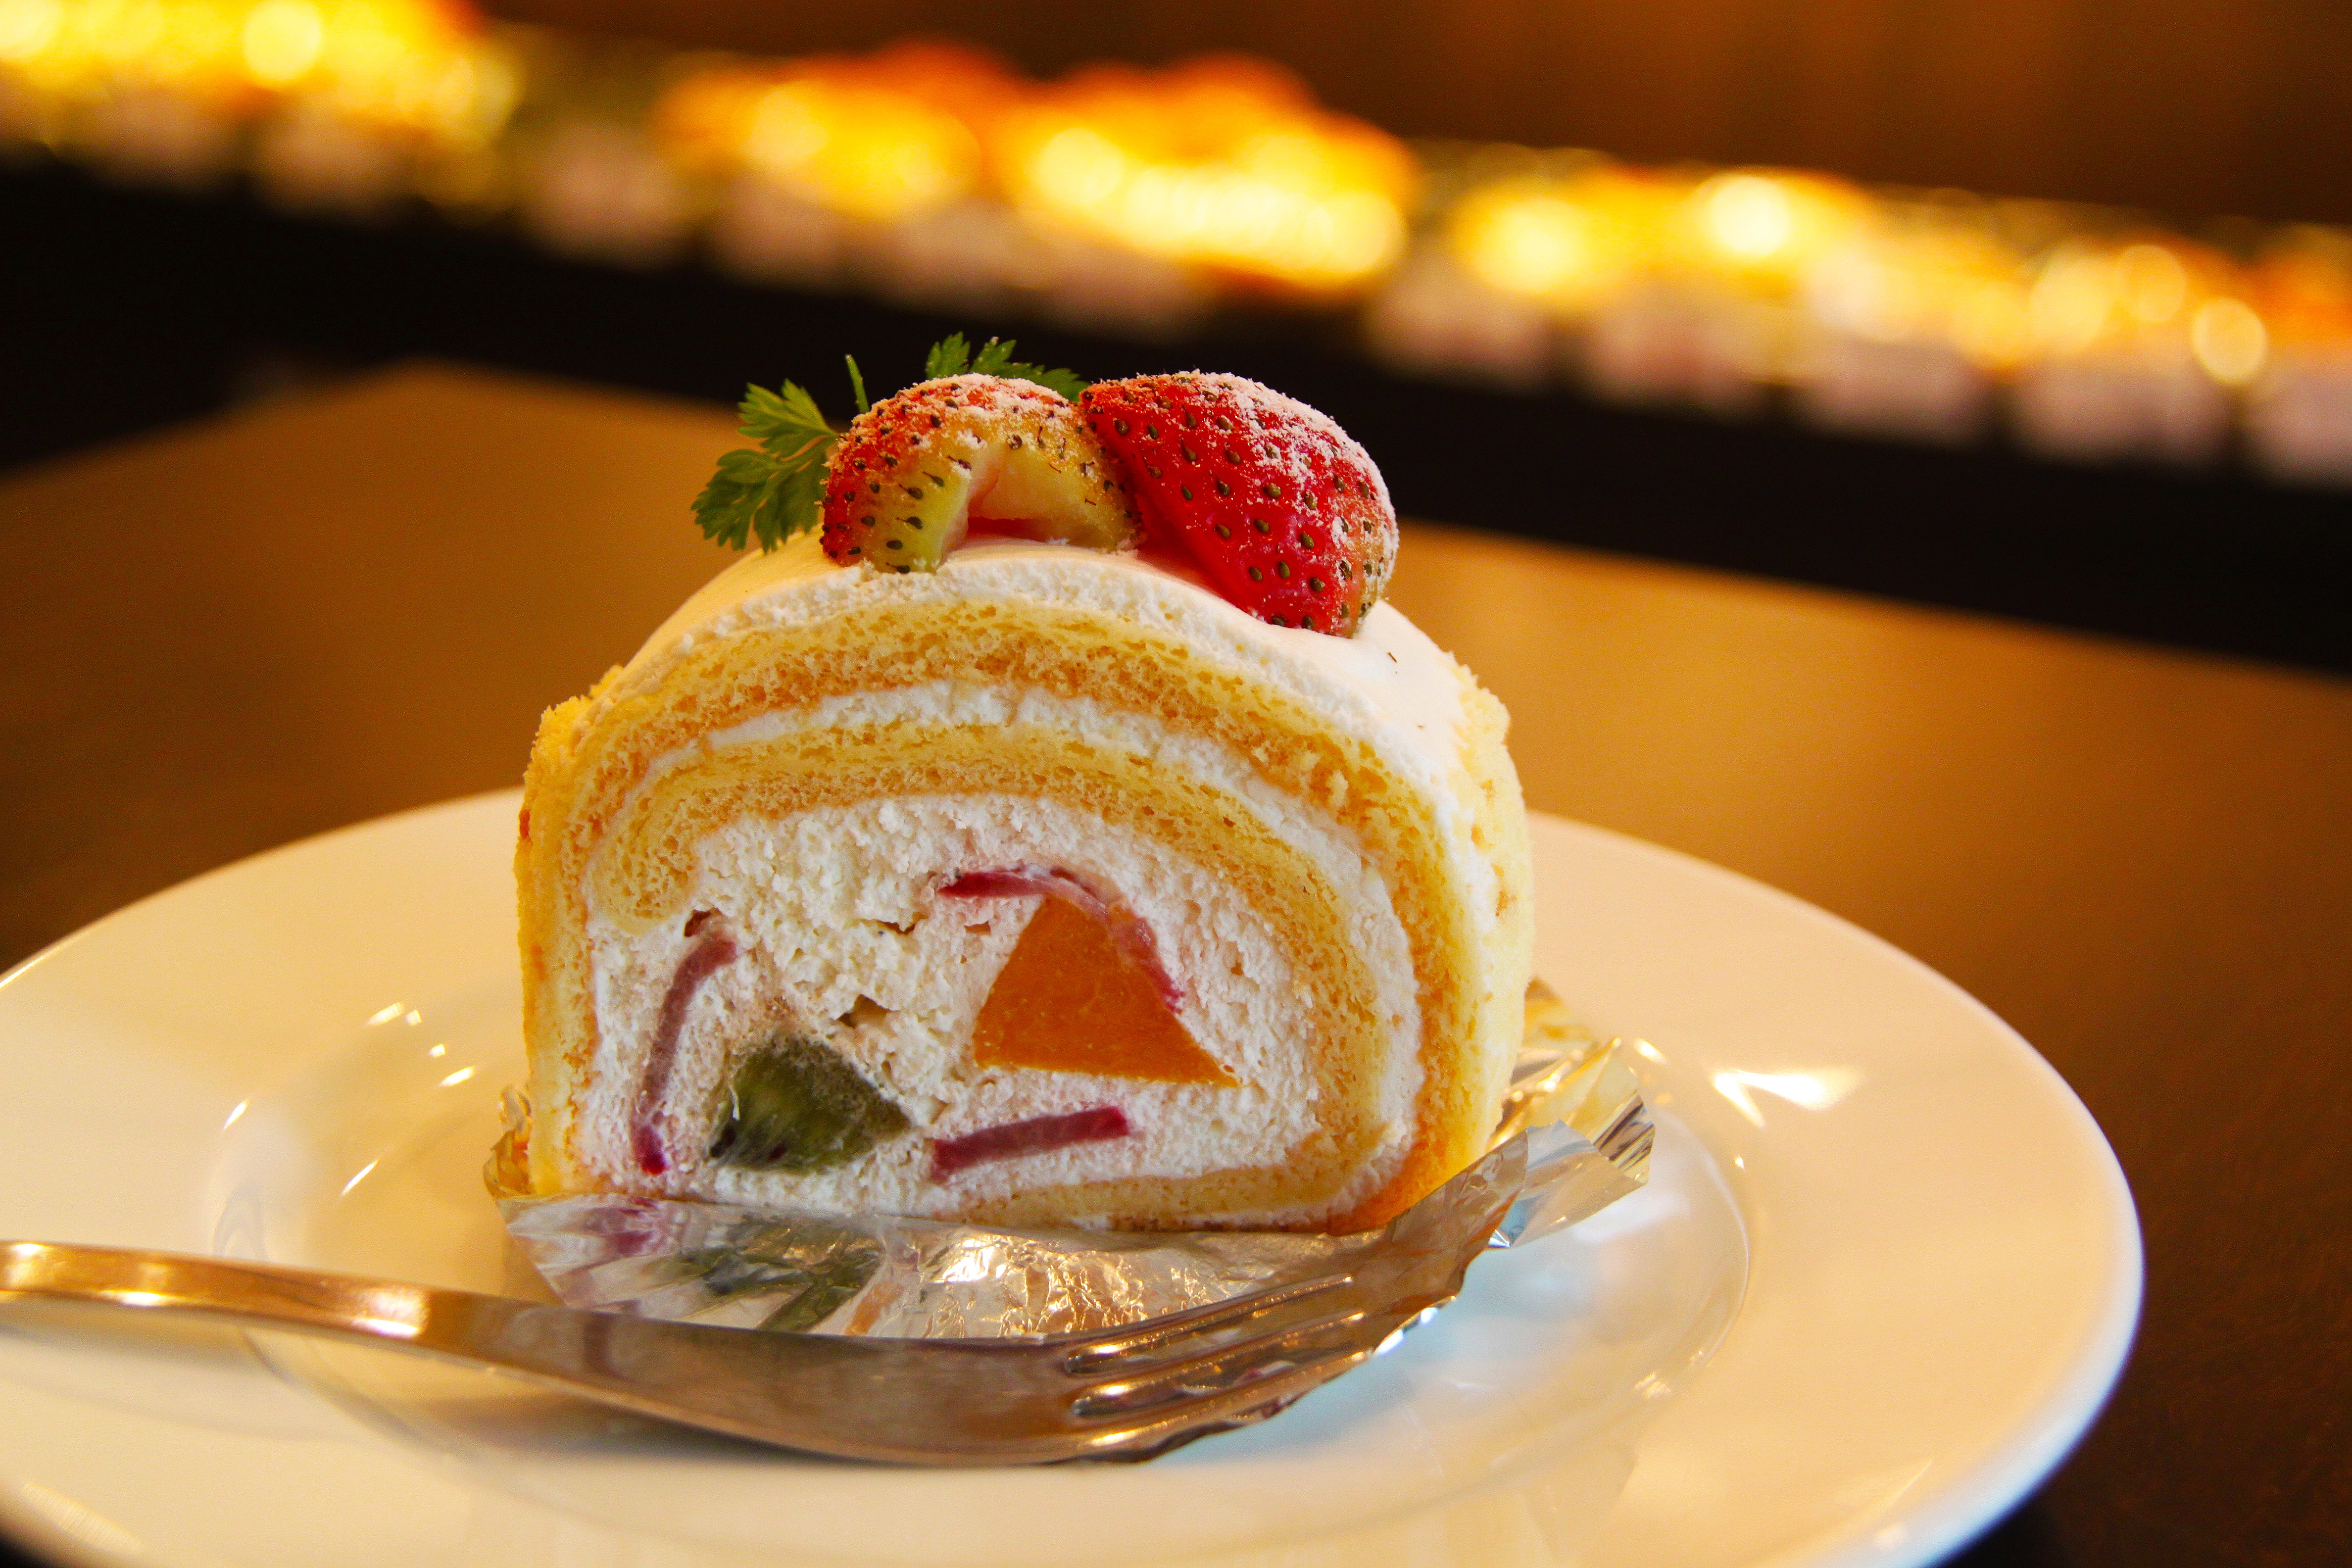 cake-cream-strawberry-dessert-53110.jpeg (4752×3168)